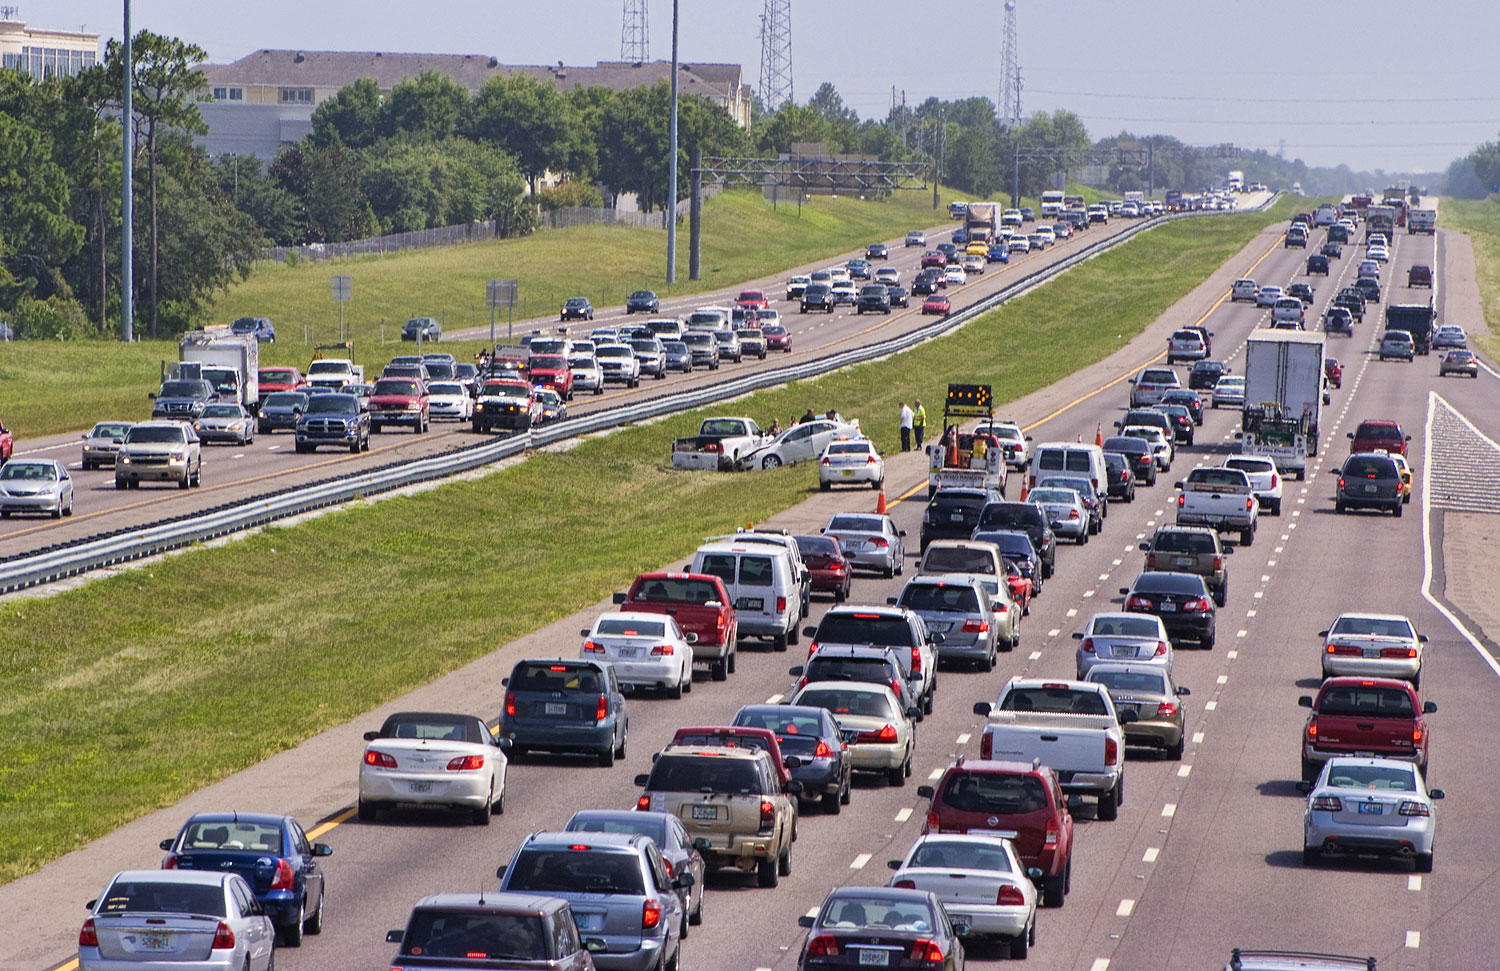 Traffic on the I-4 Interstate Highway in Florida. According to a study by Real Estate blog Movoto, Florida ranks as the most stressful state in America.